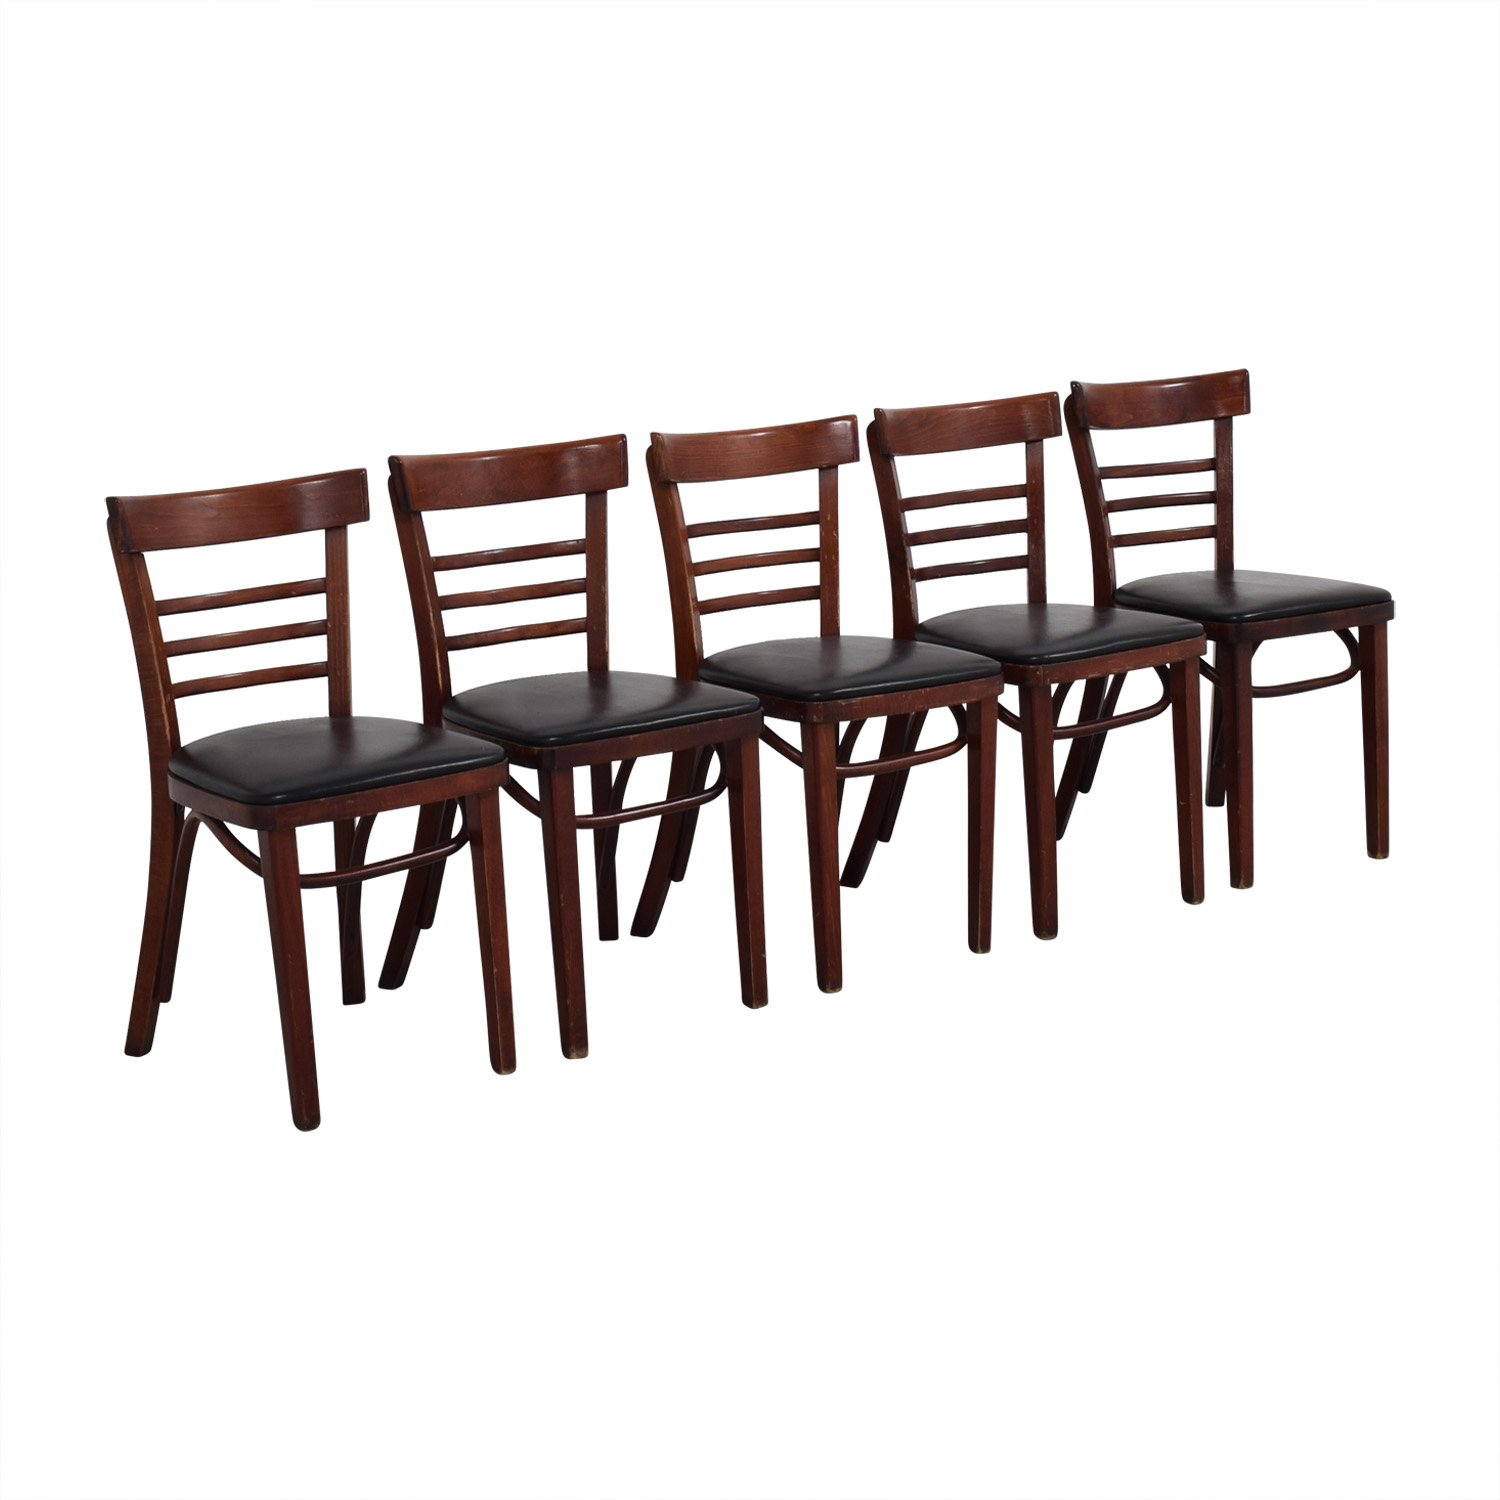 Wood and Black Leather Upholstered Chairs / Chairs